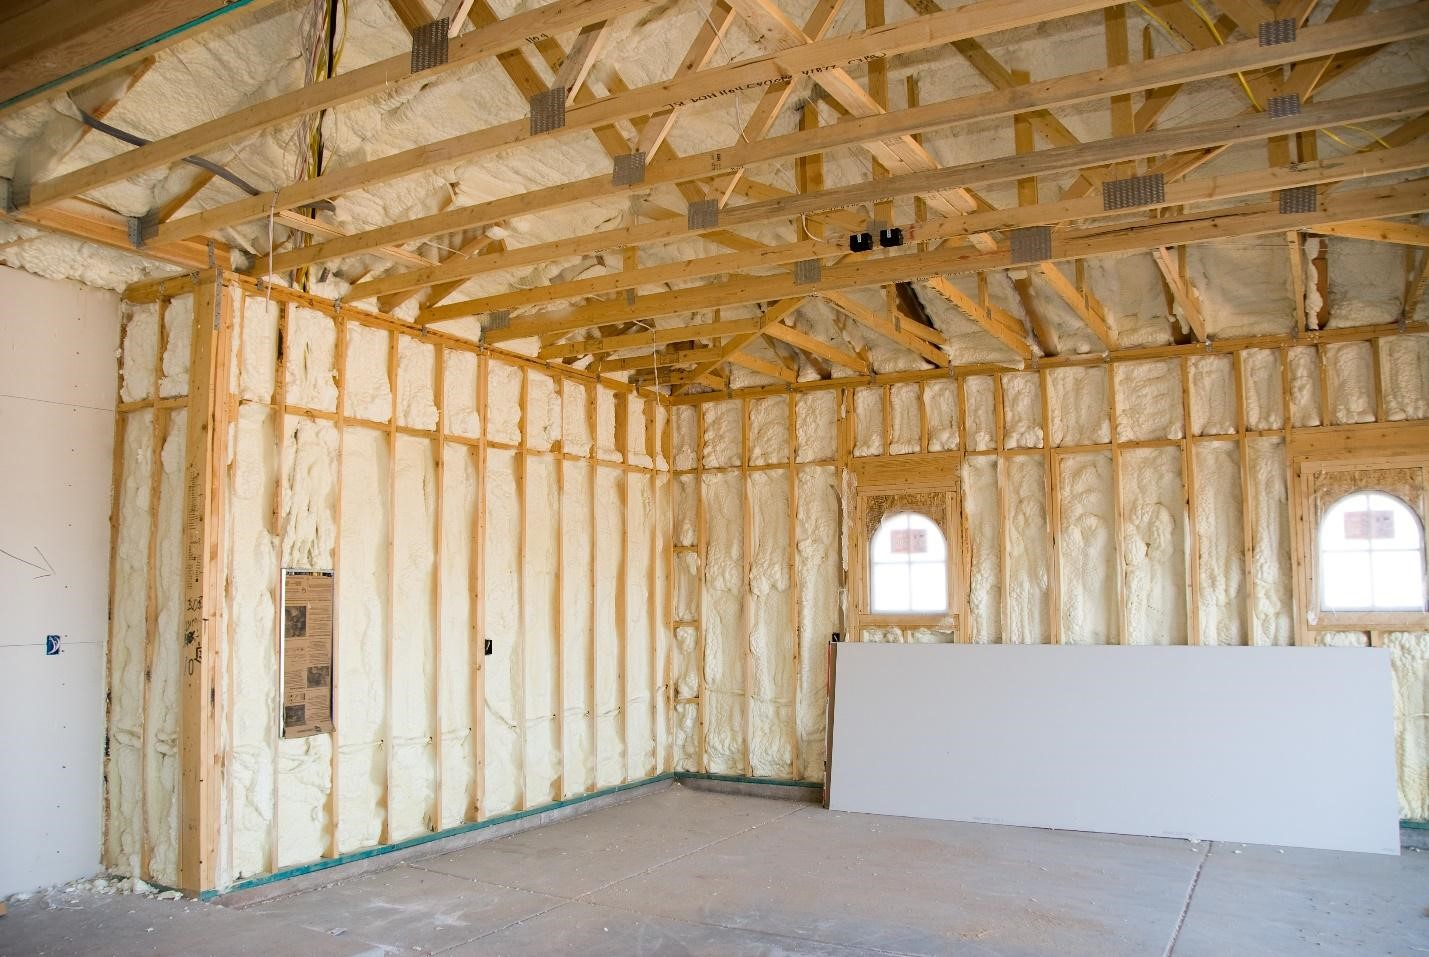 How to Stay Warm in Winter with Spray Foam Insulation